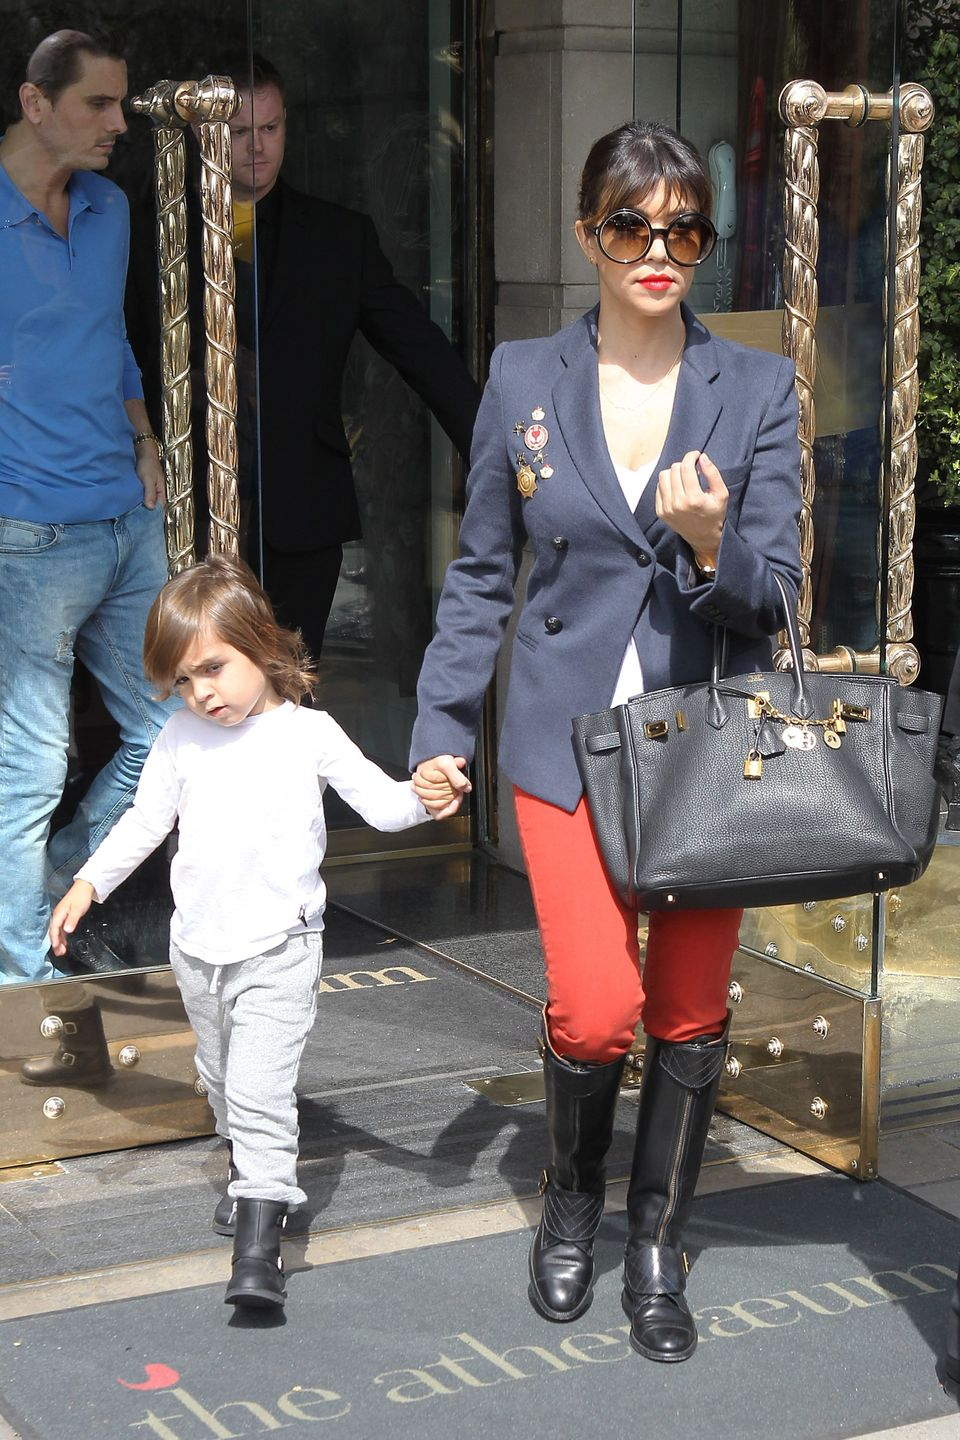 Kourtney Kardashian and her son Mason seen leaving their hotel on April 24, 2013 in London, England.